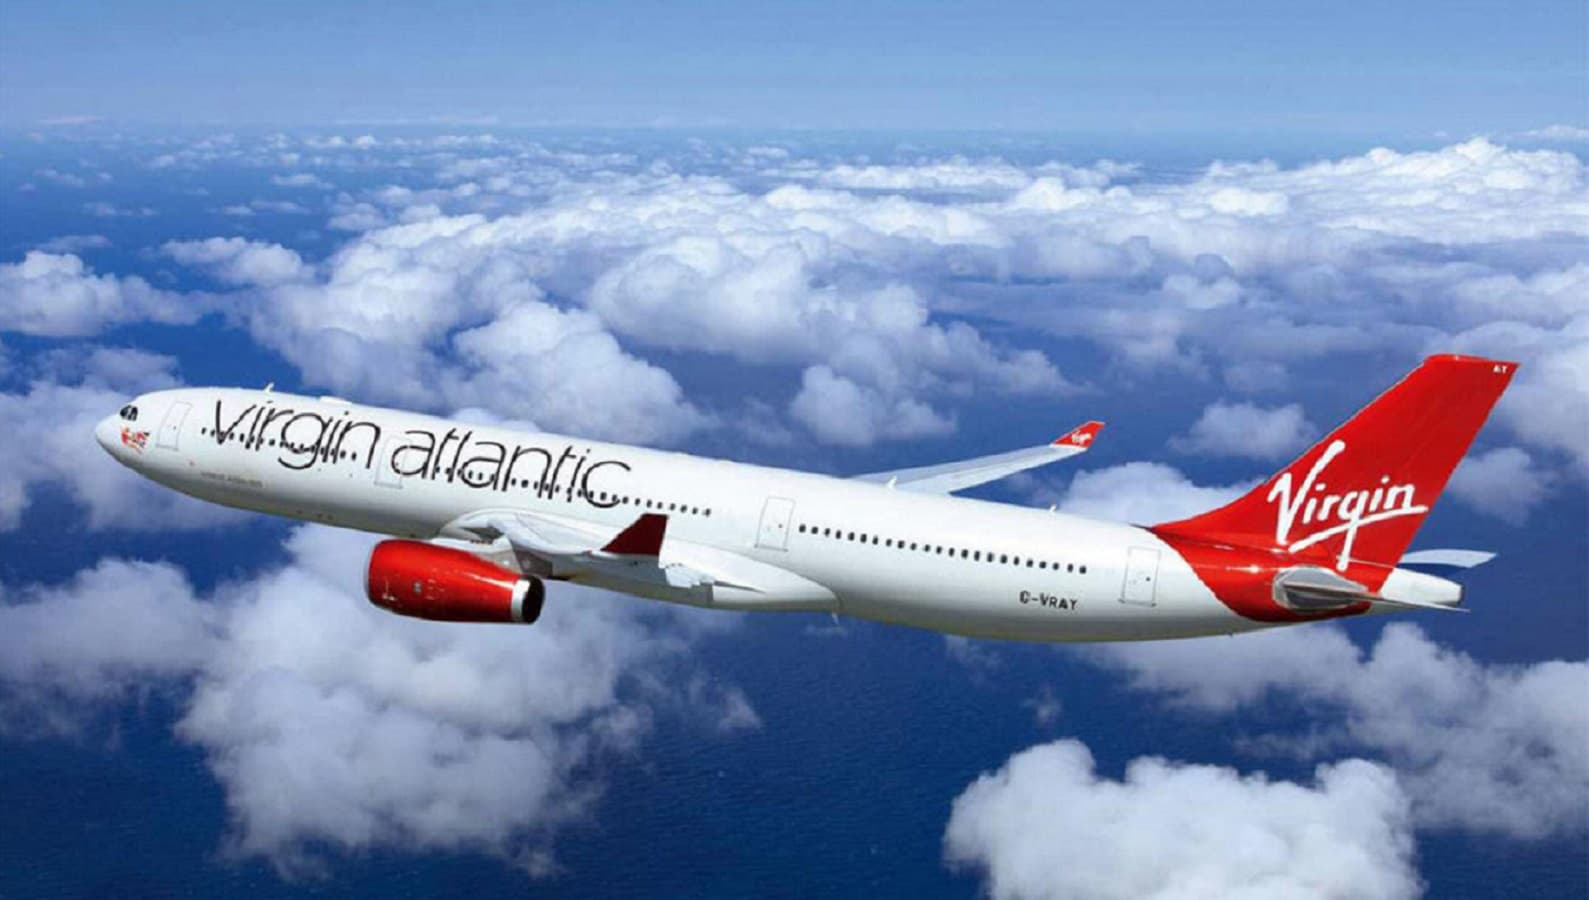 virgin atlantic flight grounded due to battery bank fire